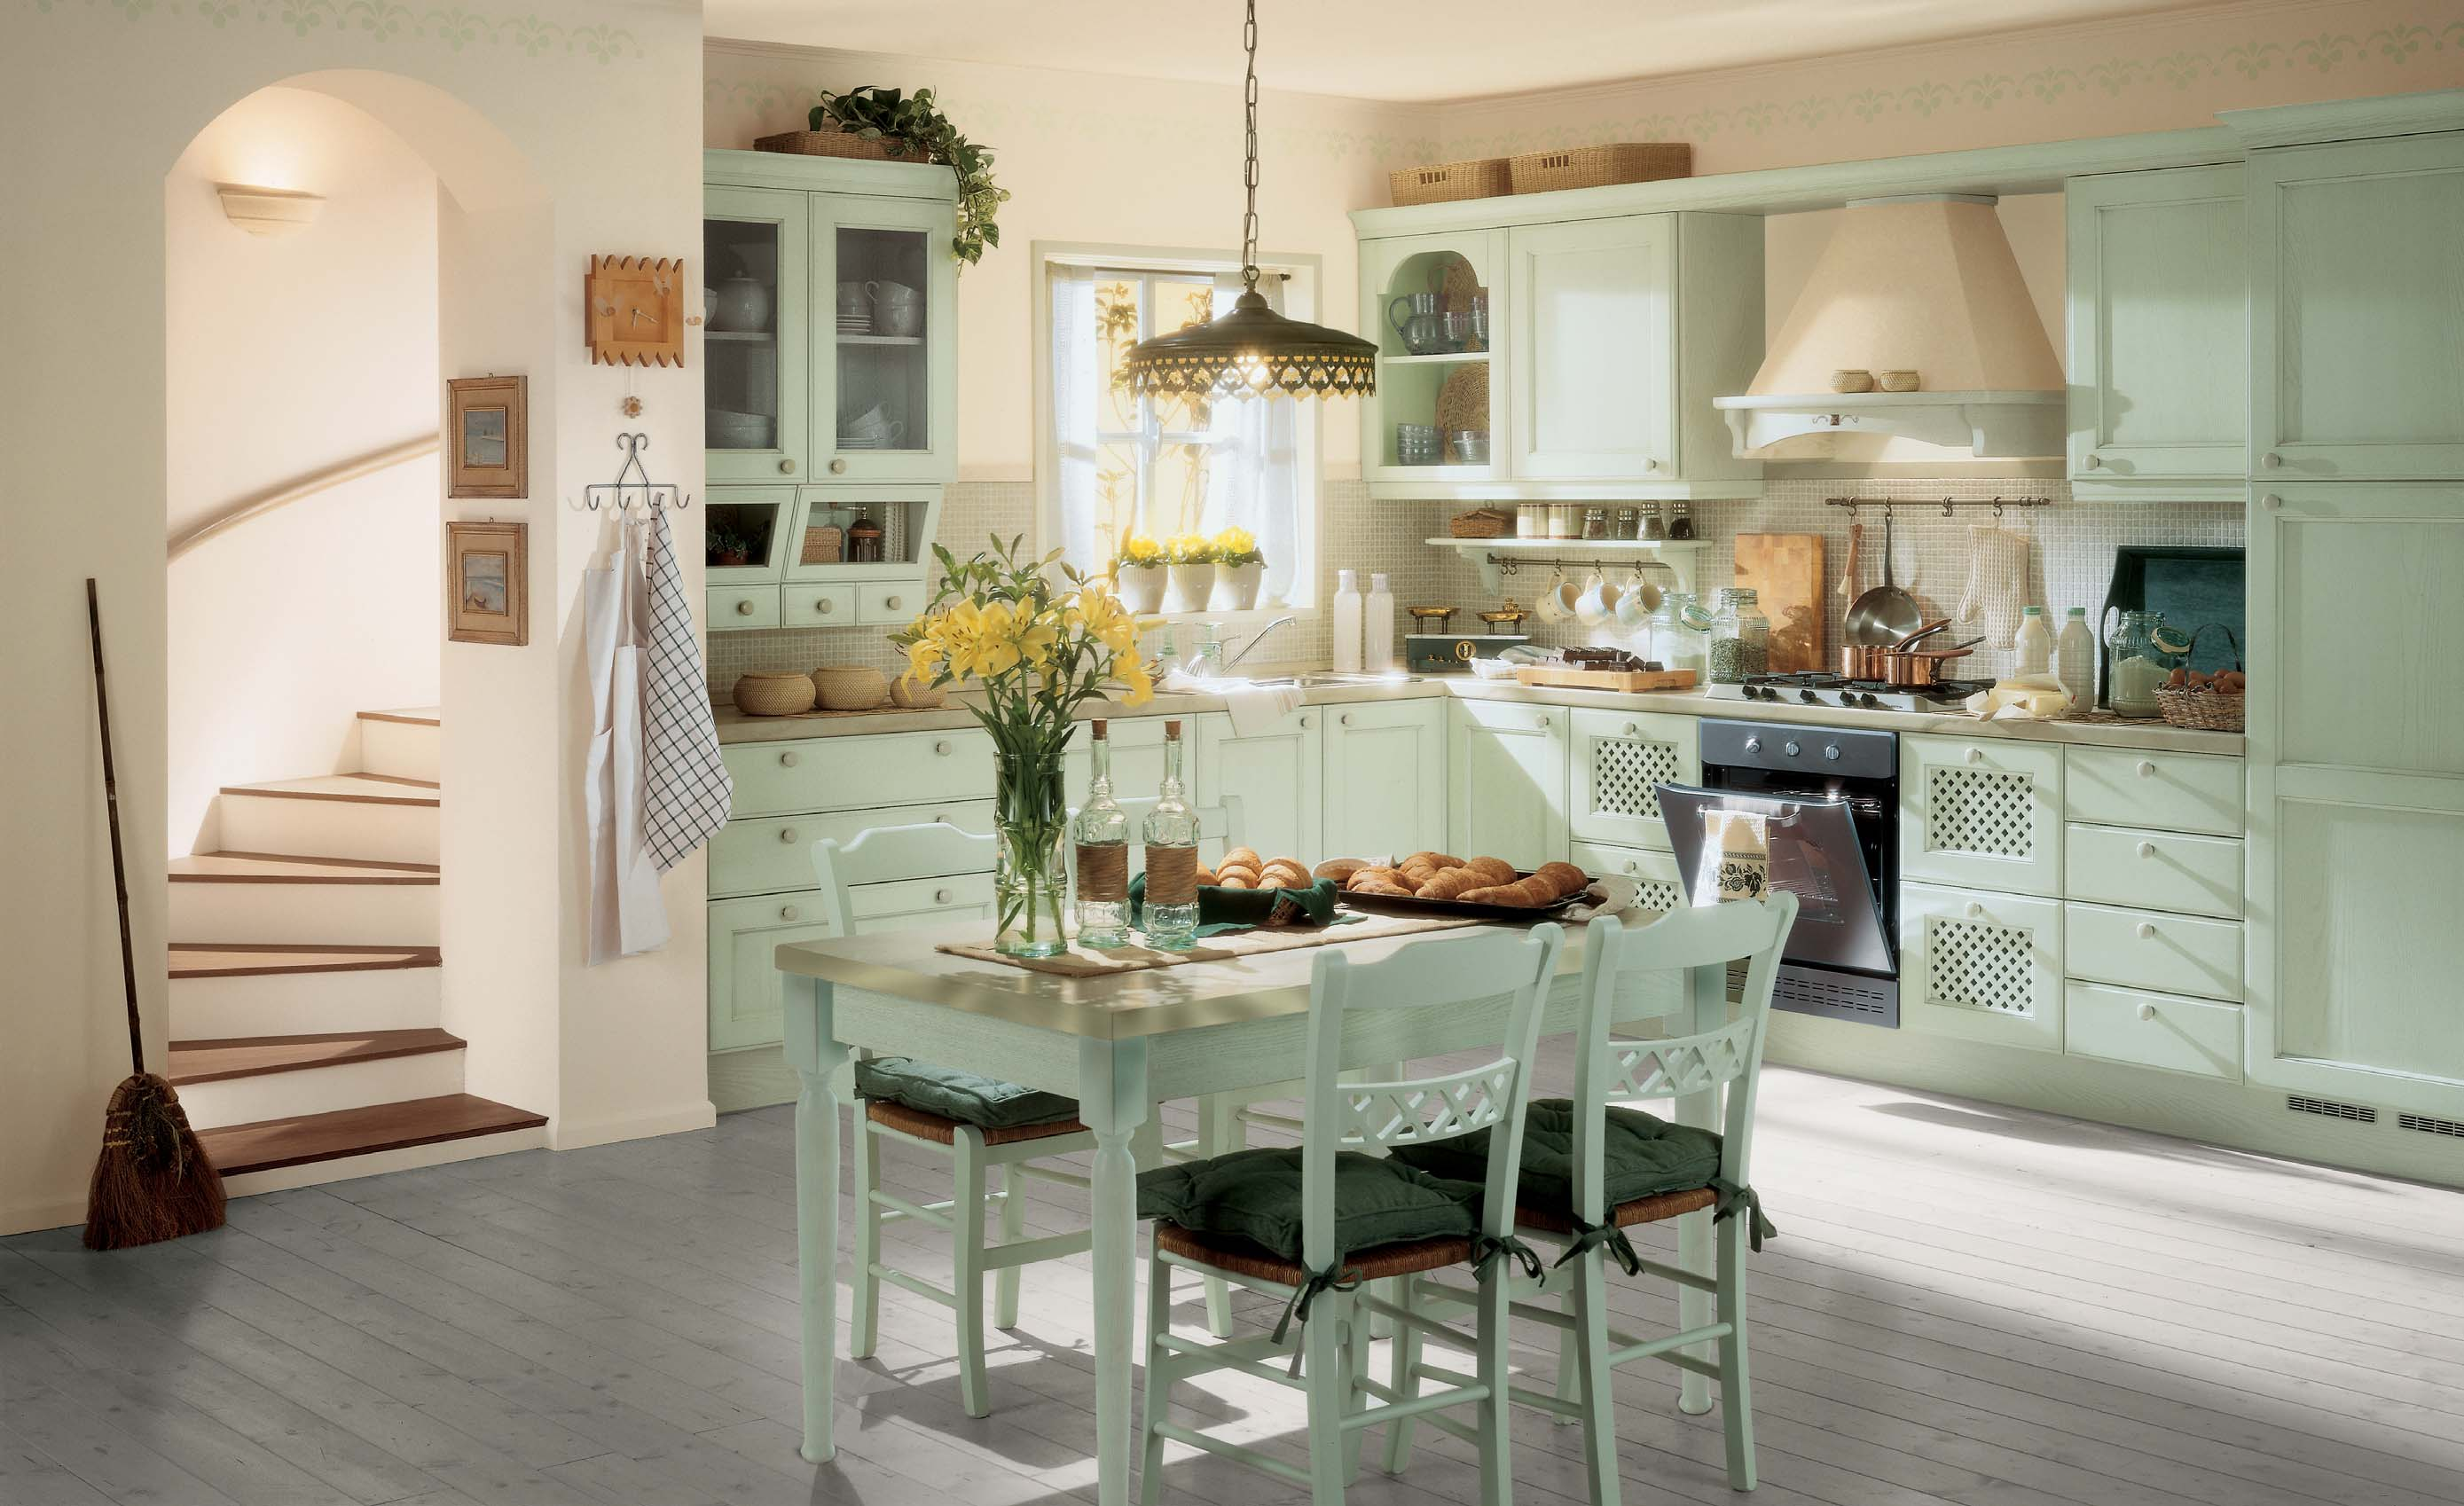 small country kitchen designs pictures country kitchen designs small country kitchen designs pictures photo 2